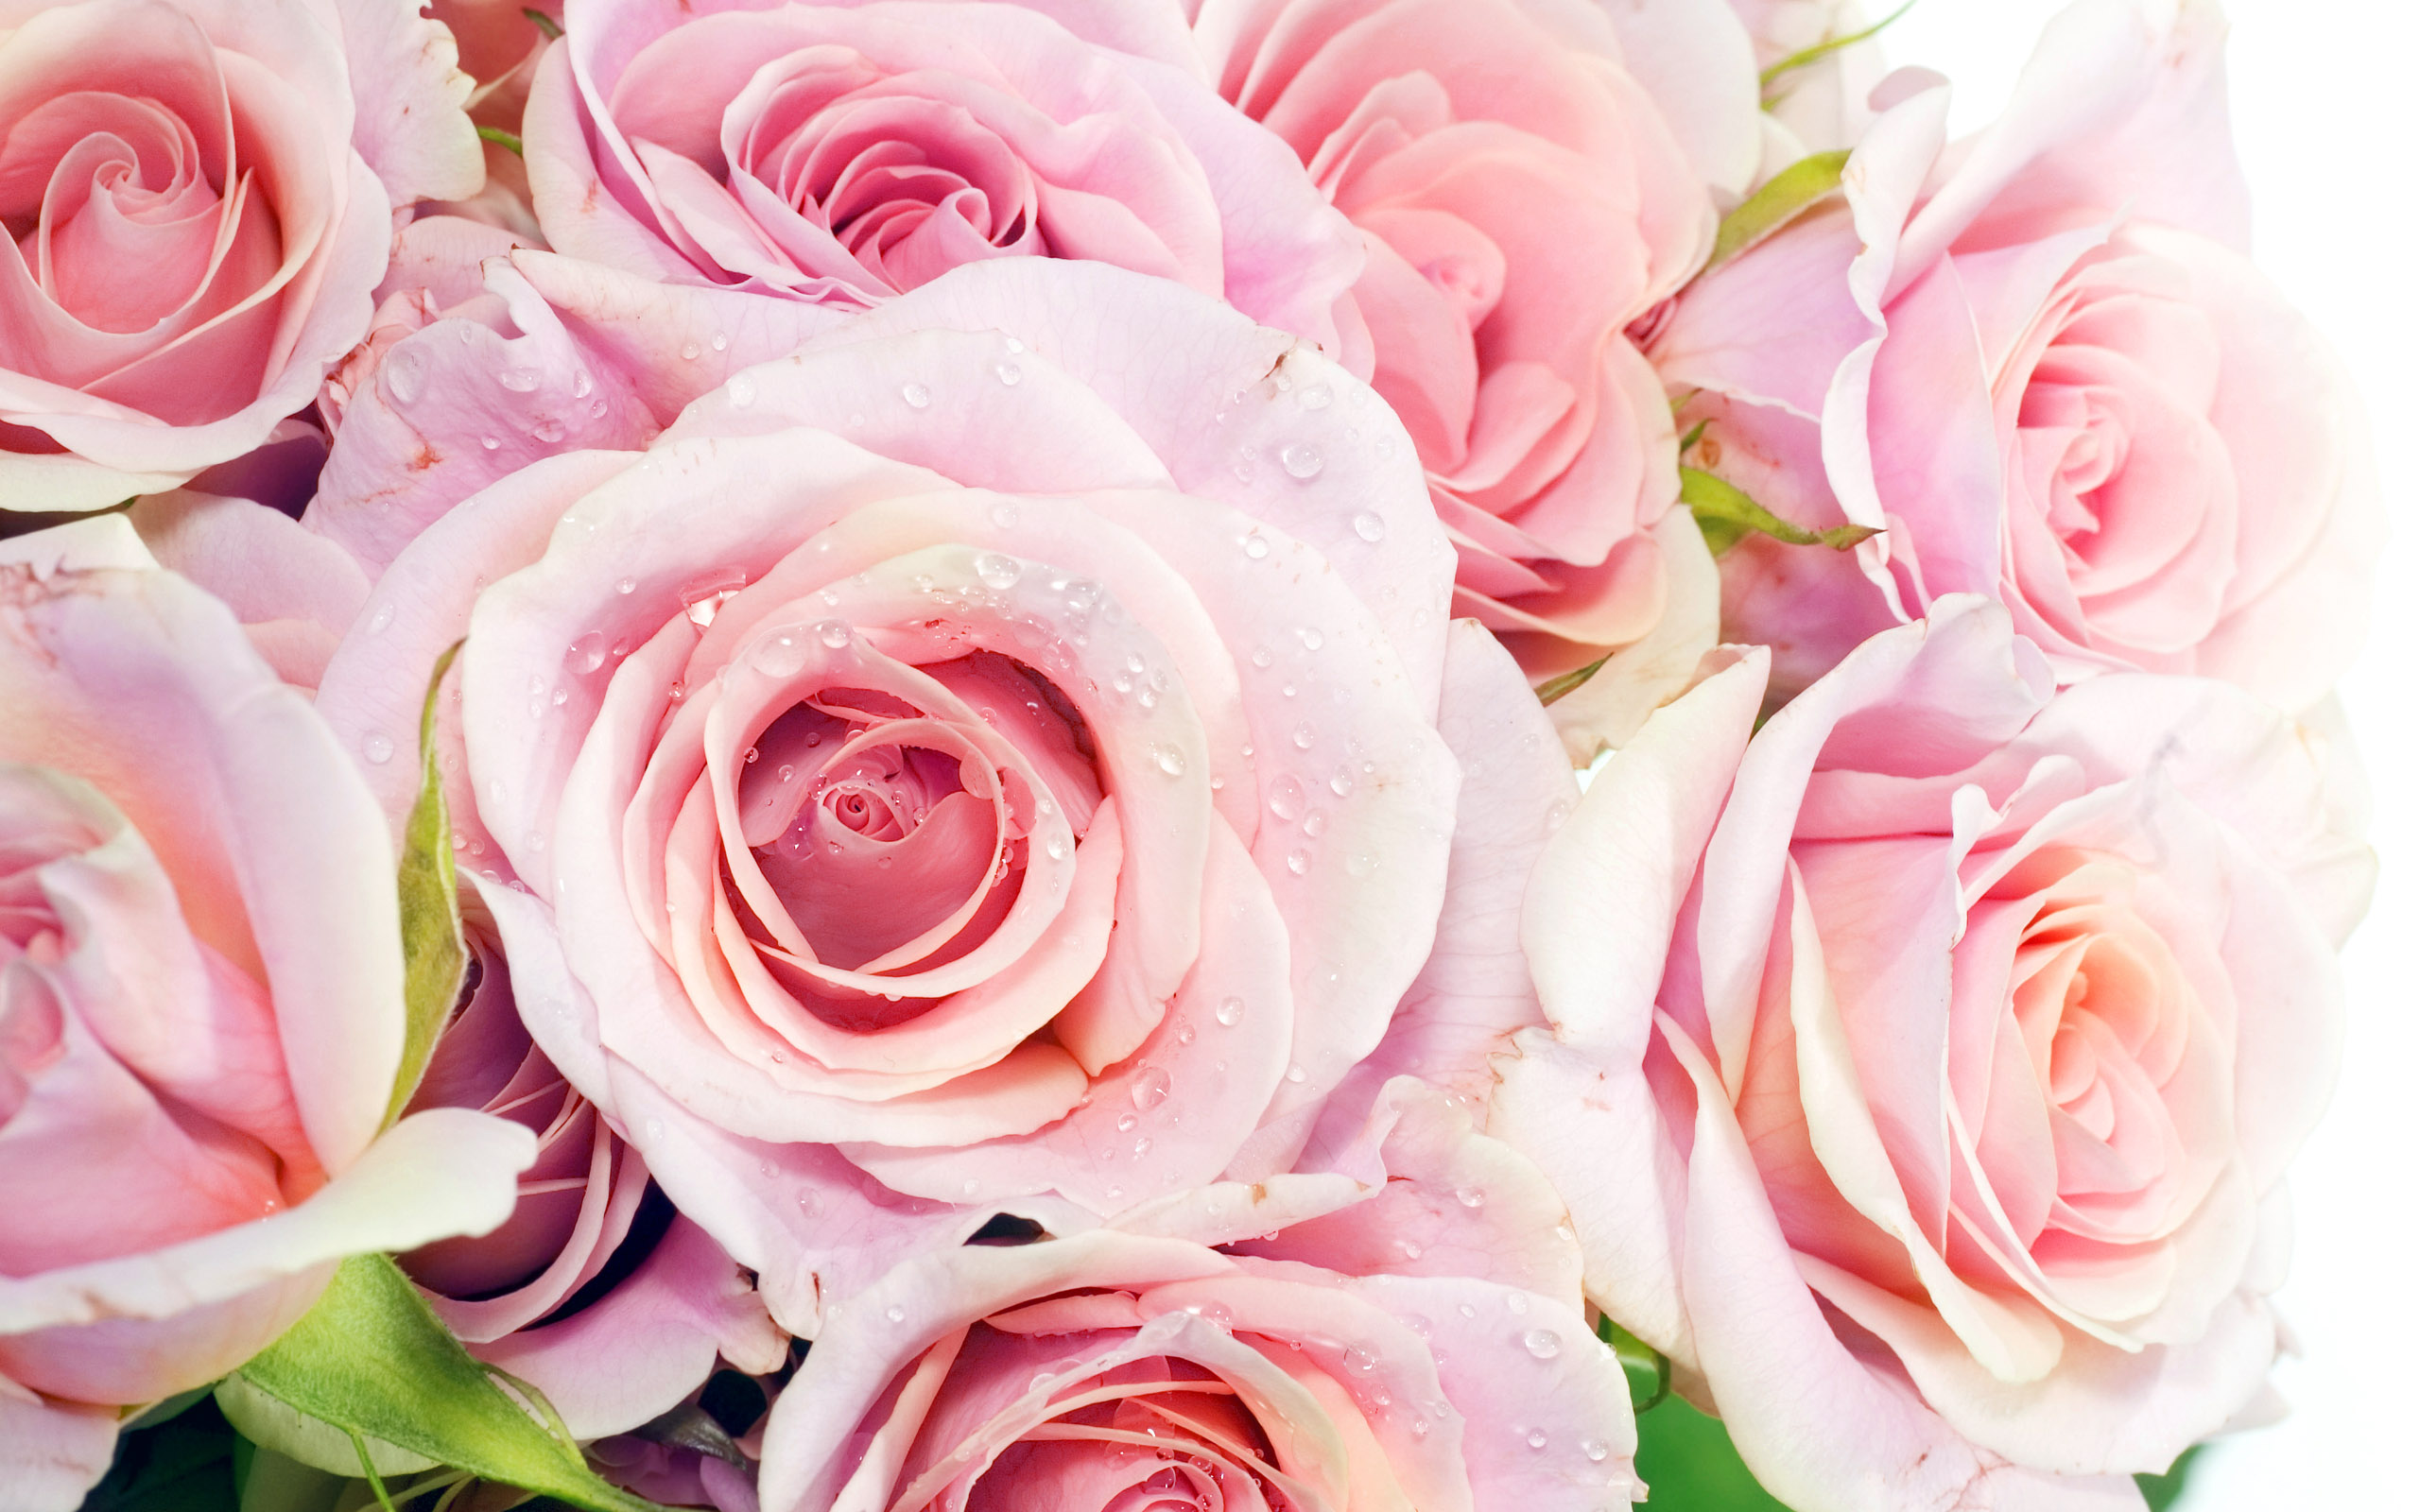 Pretty pink roses roses wallpaper 34610937 fanpop - Pretty roses wallpaper ...